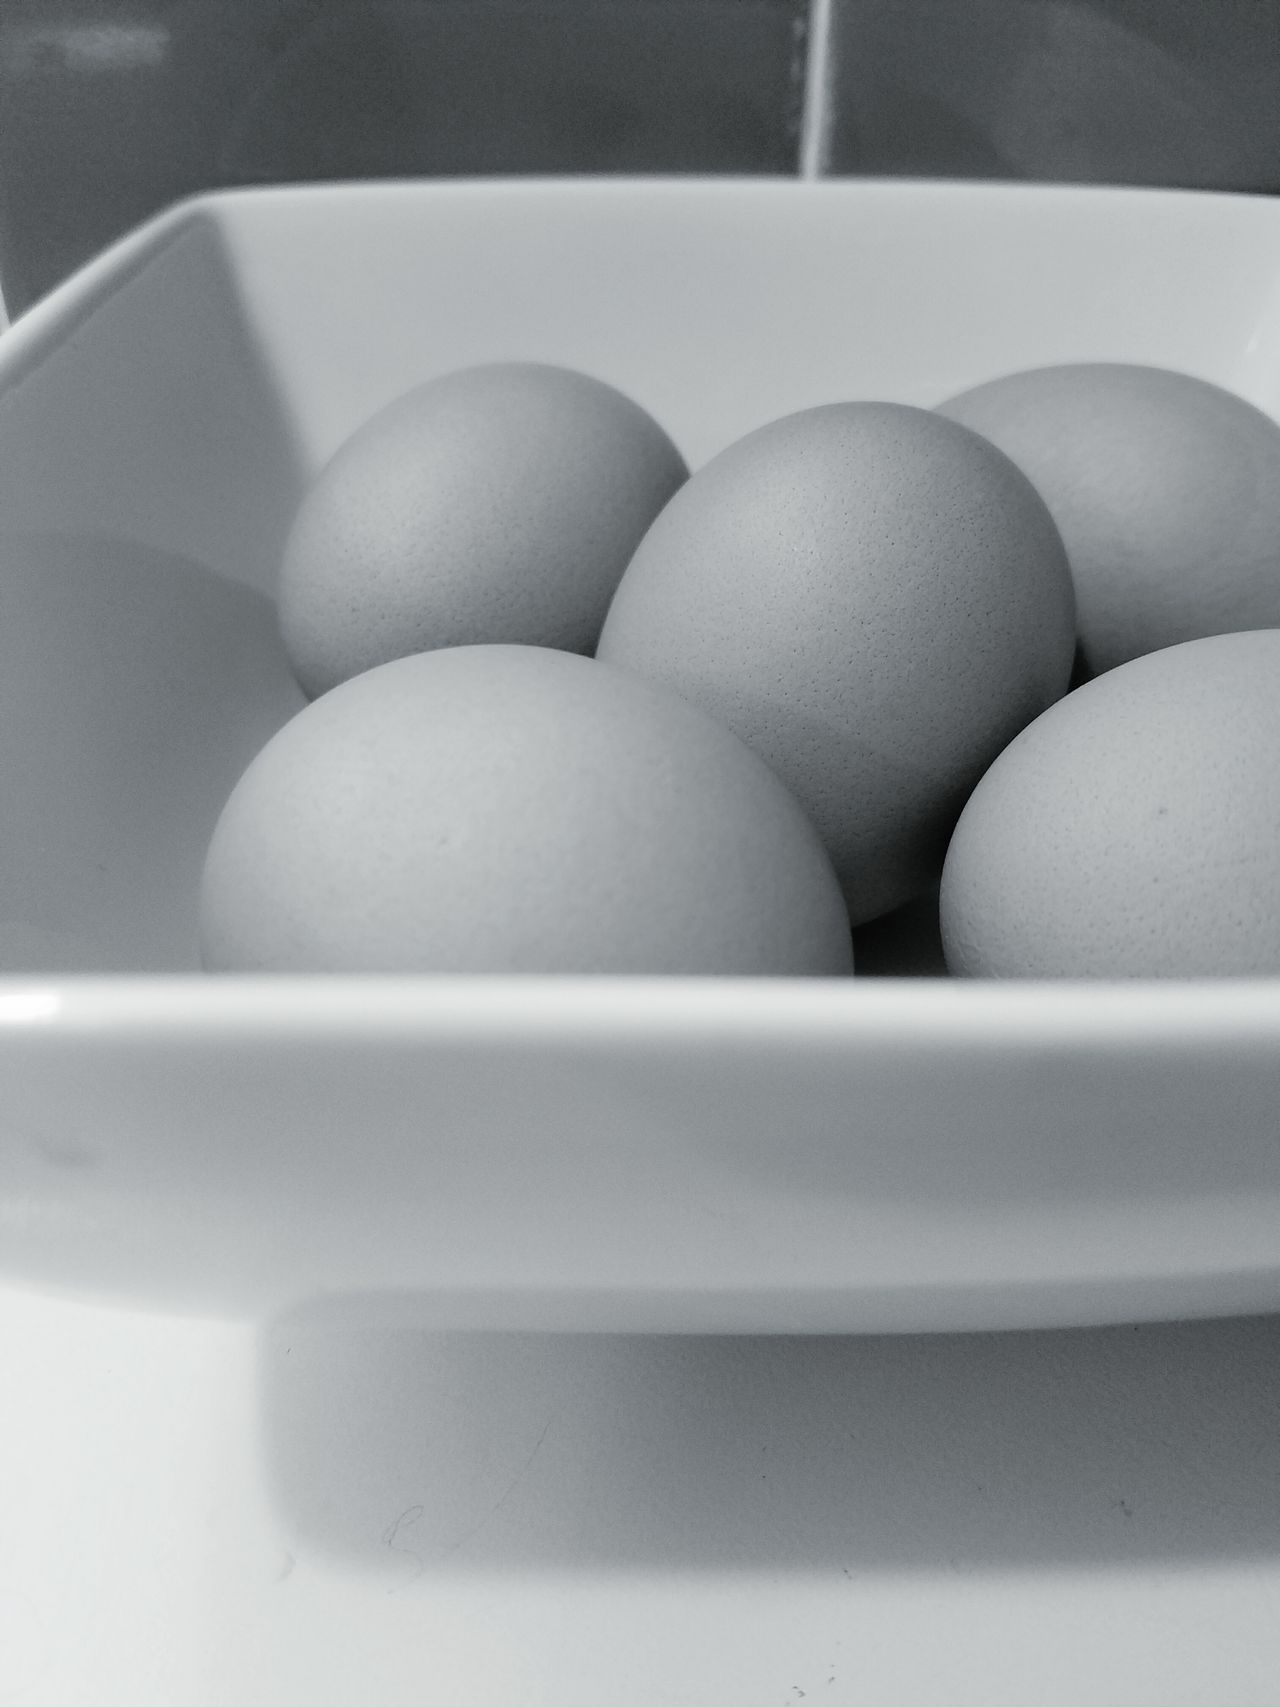 B&W Eggs MUR B&W The Song Of Light Organic Food Extreme Close-up Medium Group Of Objects MUR KITCHEN Monochrome Photography Beautiful Food Is Healthy Food